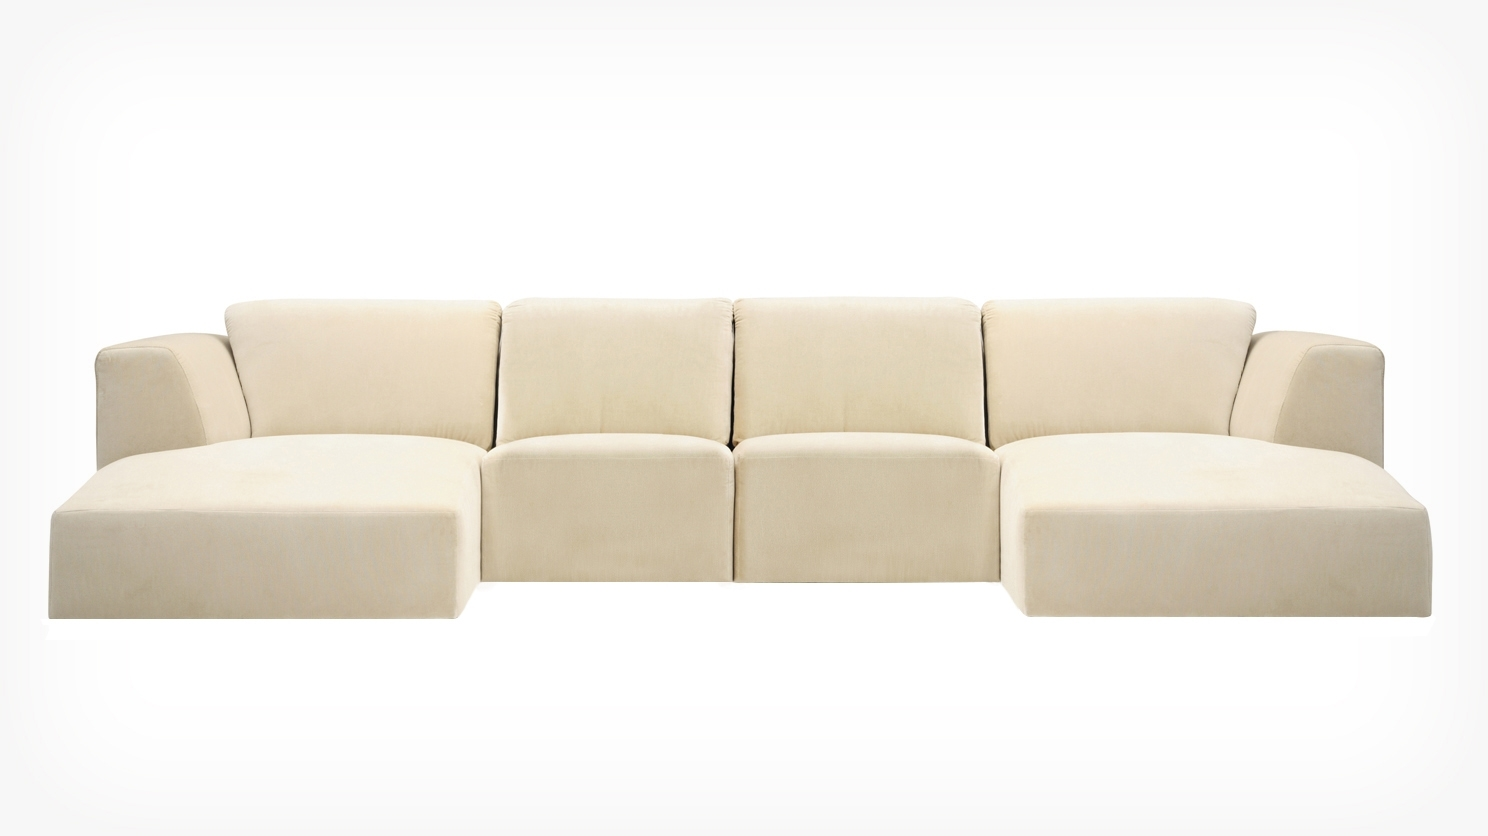 Eq3 | Morten 4 Piece Sectional Sofa With Chaise – Fabric In Eq3 Sectional Sofas (View 7 of 10)